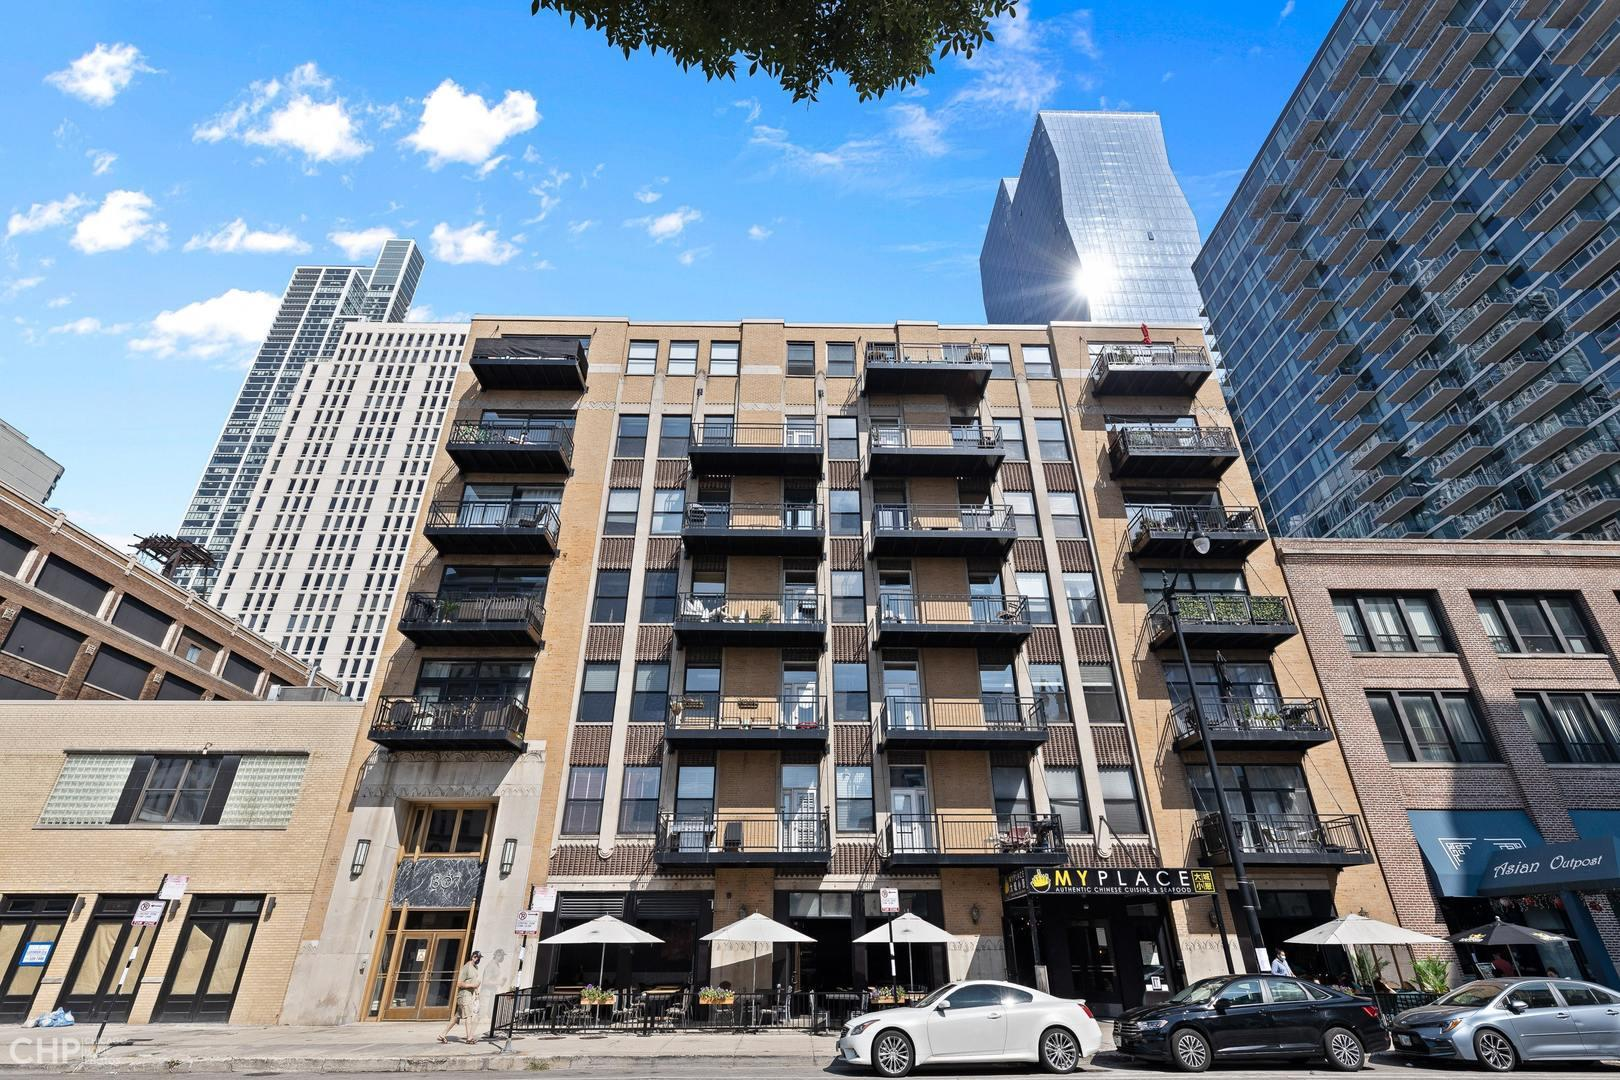 1307 S wabash Avenue #413, Chicago, IL 60605 - #: 10822449